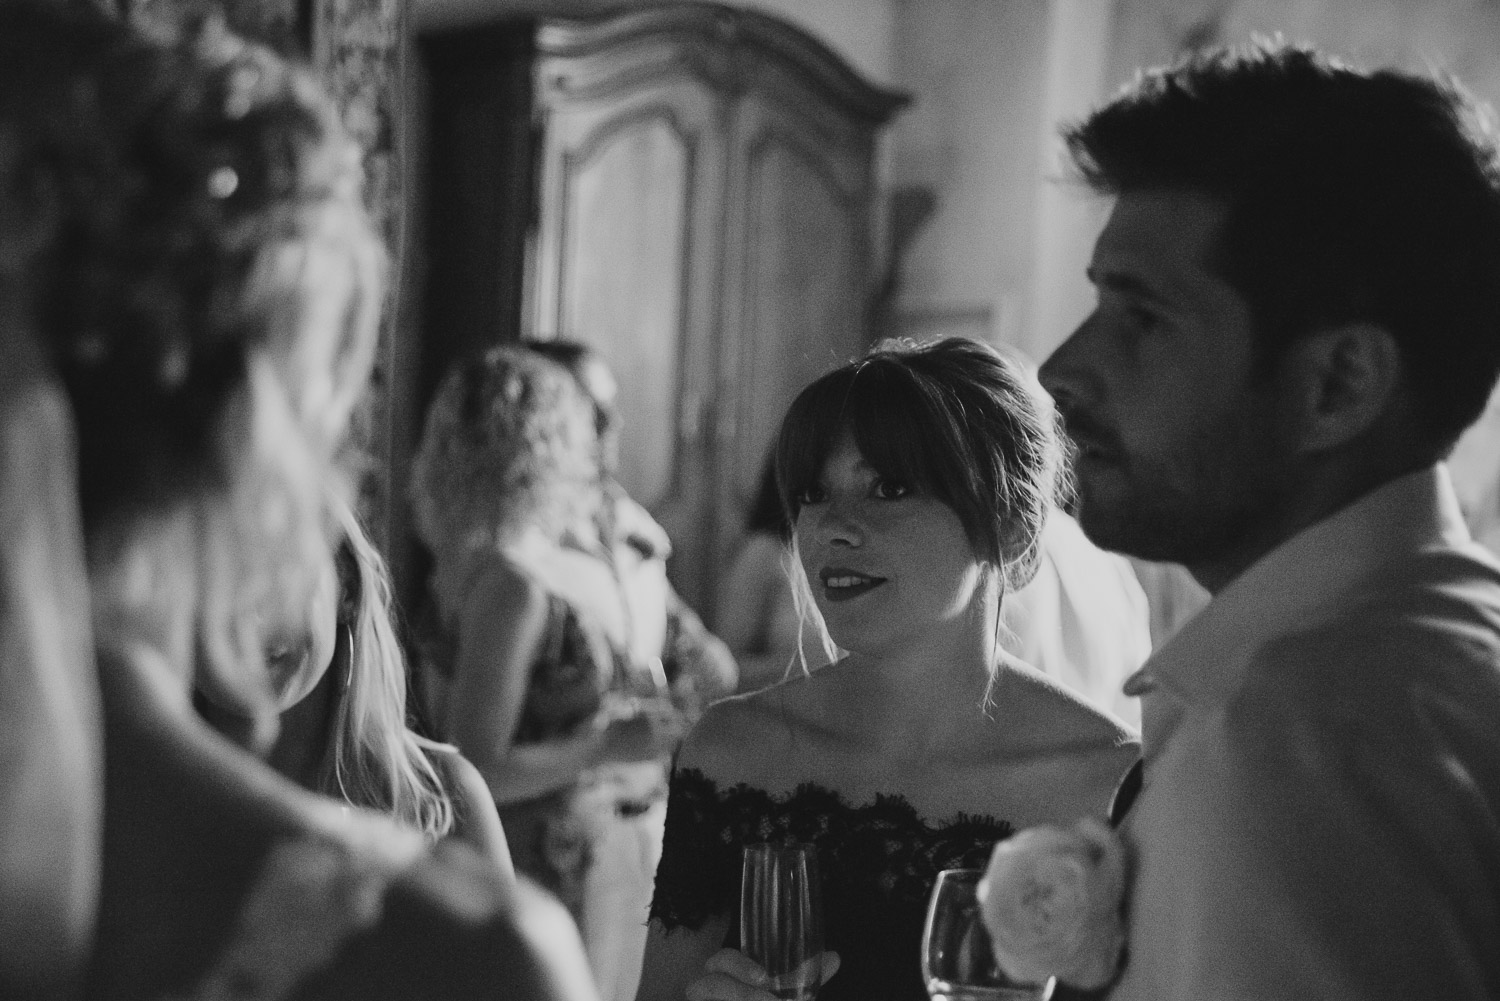 chateau_la_commanderie_mirepoix__wedding_katy_webb_photography_france_UK112